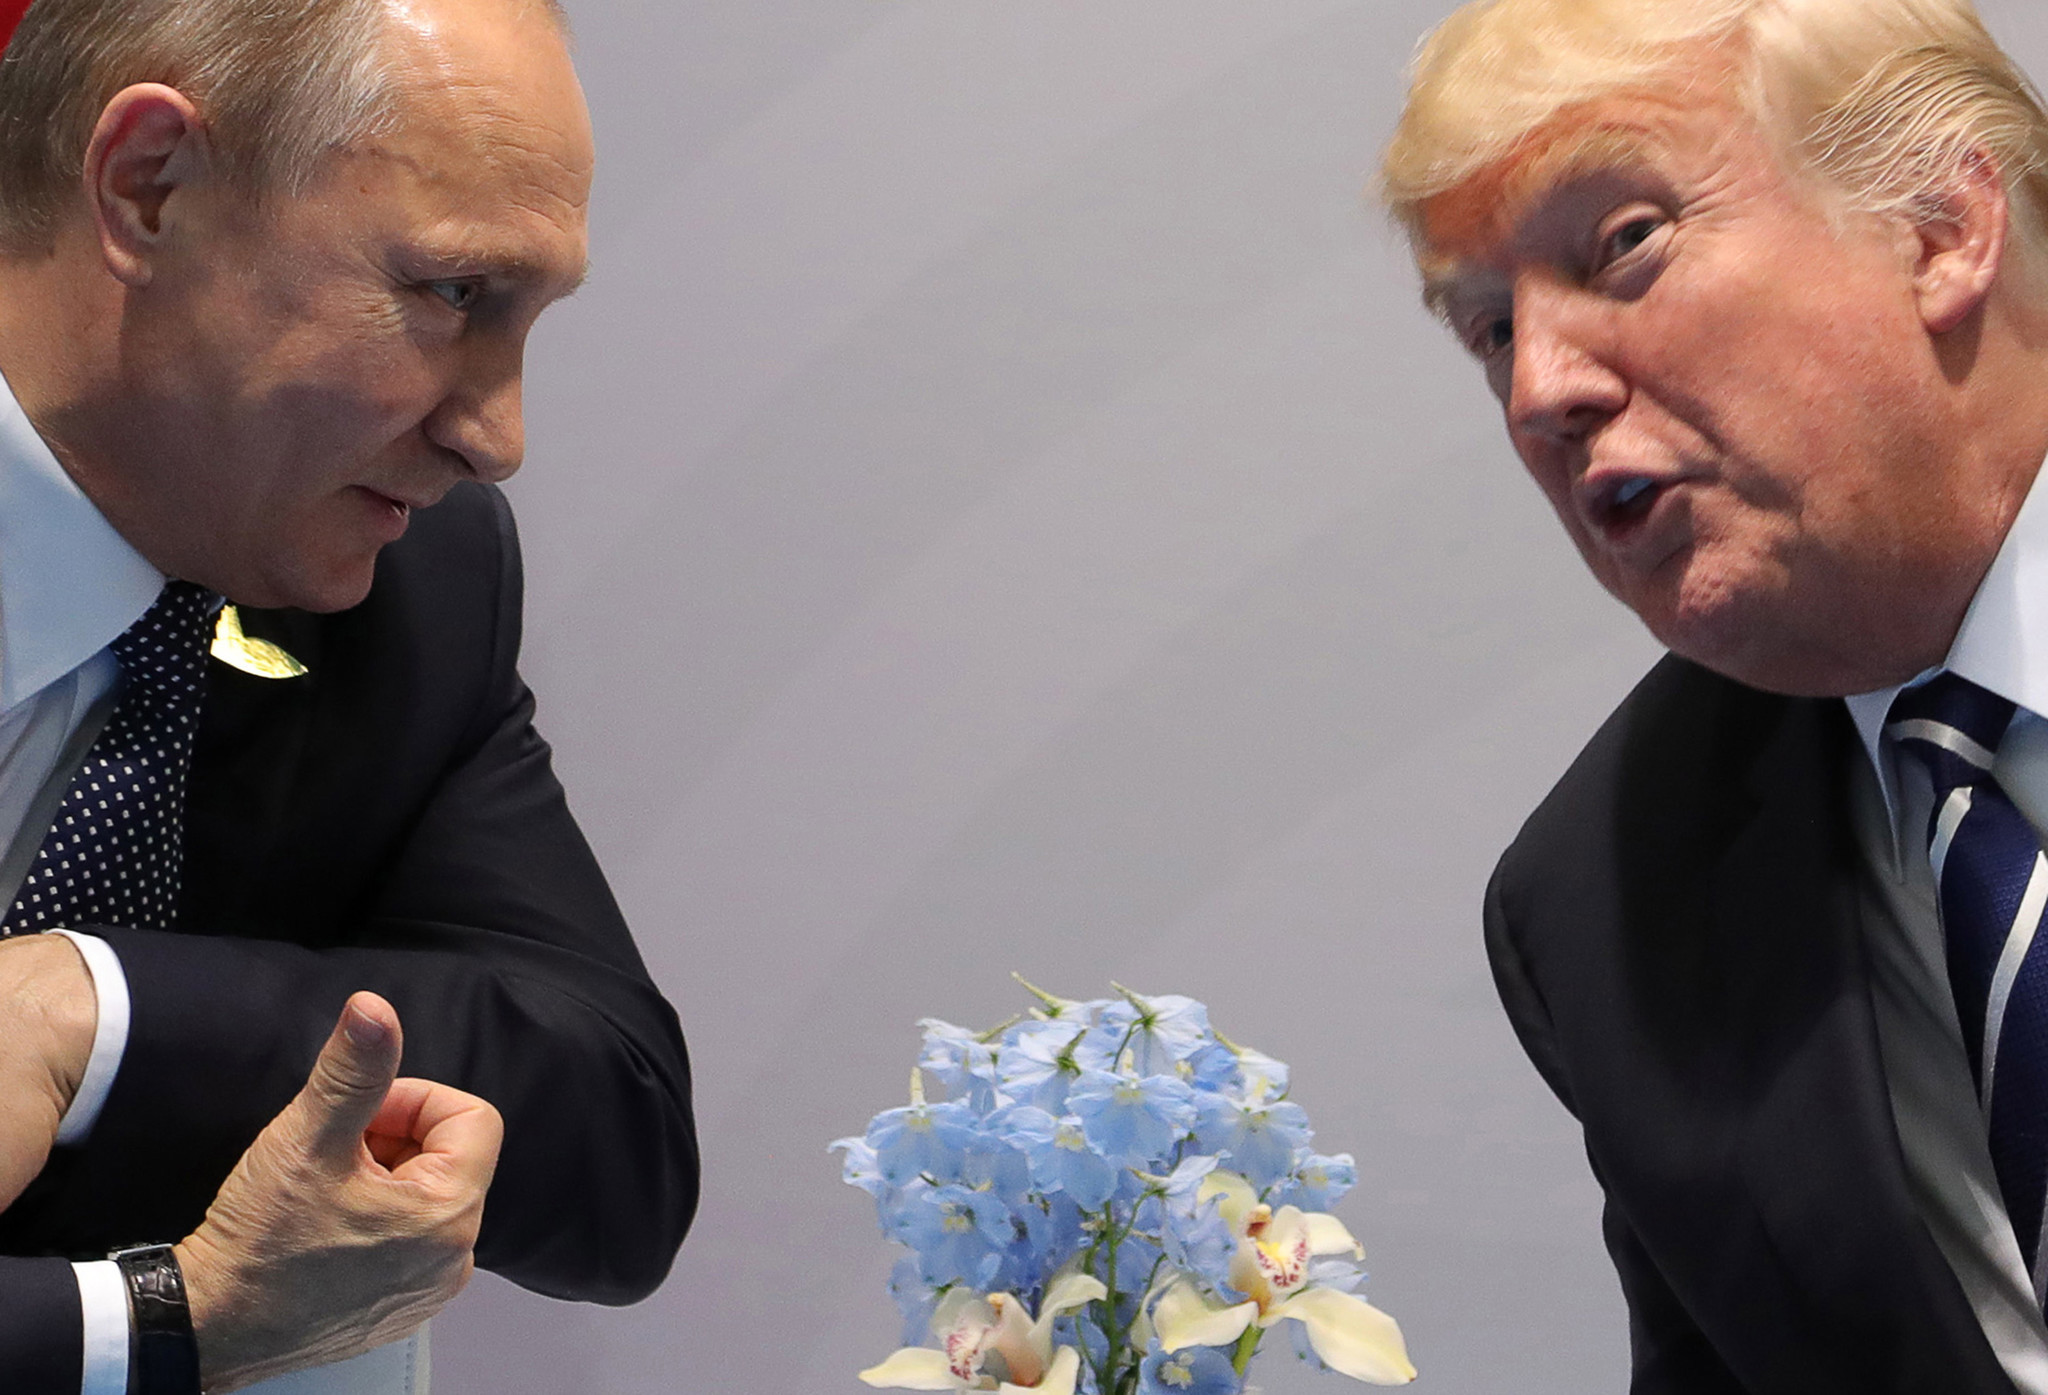 Russian President Vladimir Putin, left, and President Trump talk on the sidelines of the Group of 20 summit meeting in July in Hamburg, Germany.